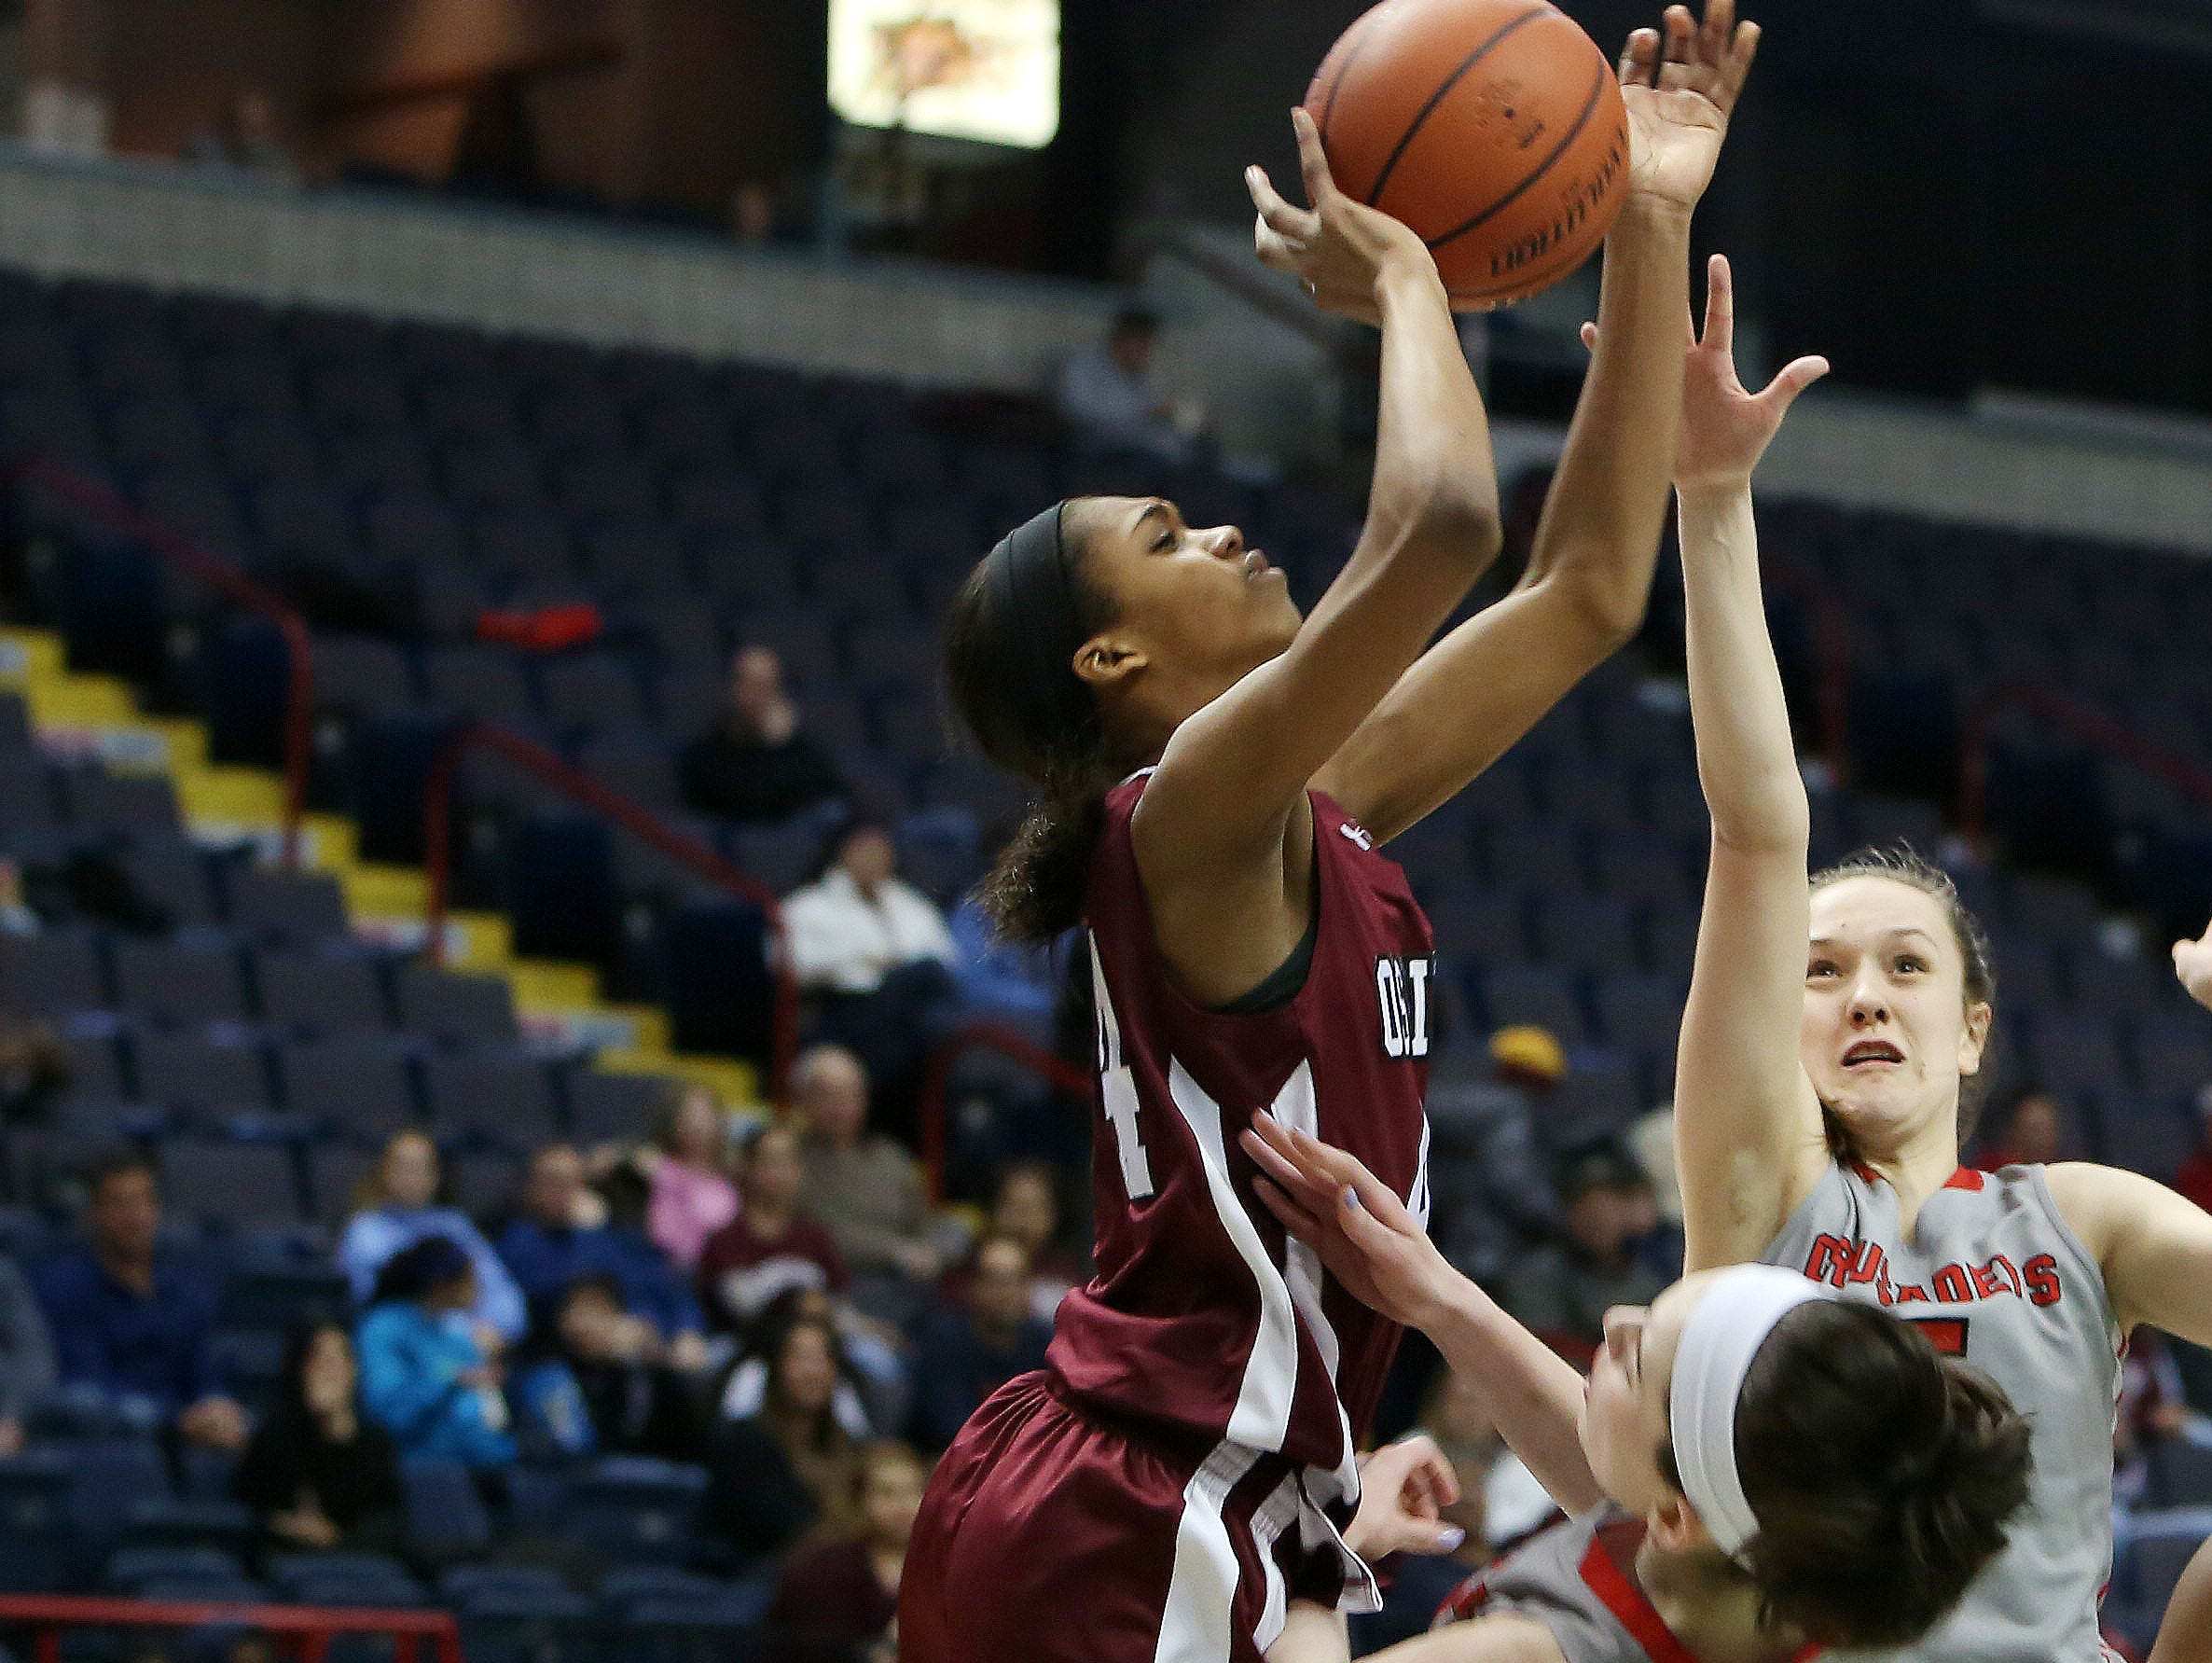 Ossining's Aubrey Griffin (44) goes up for a shot in front of Long Island Lutheran's Jenna Siletti (33) during the girls Class A final of the New York State Federation Tournament of Champions at the Times Union Center in Albany March 18, 2016.